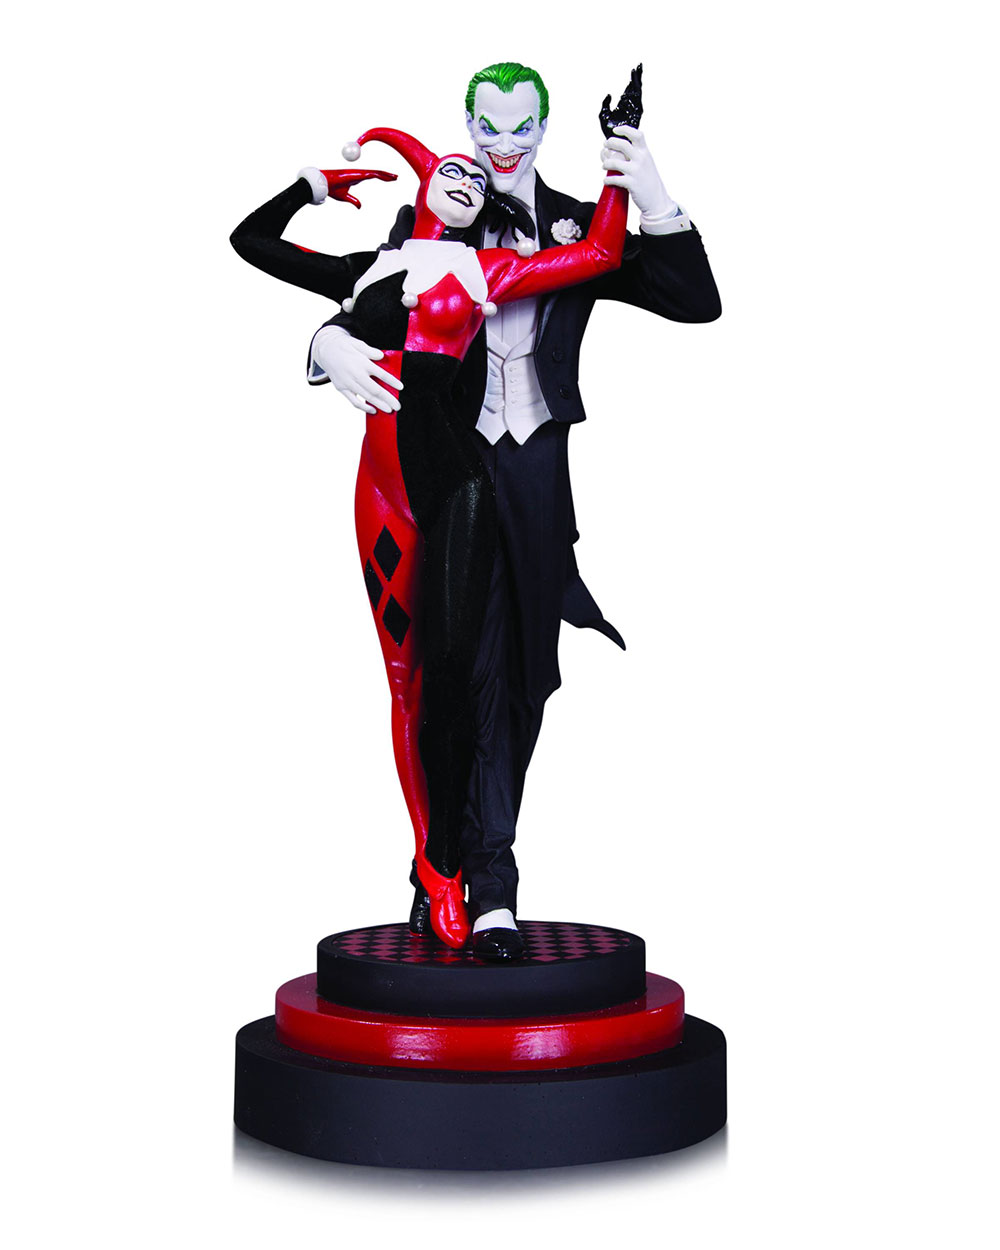 Joker and Harley Statue